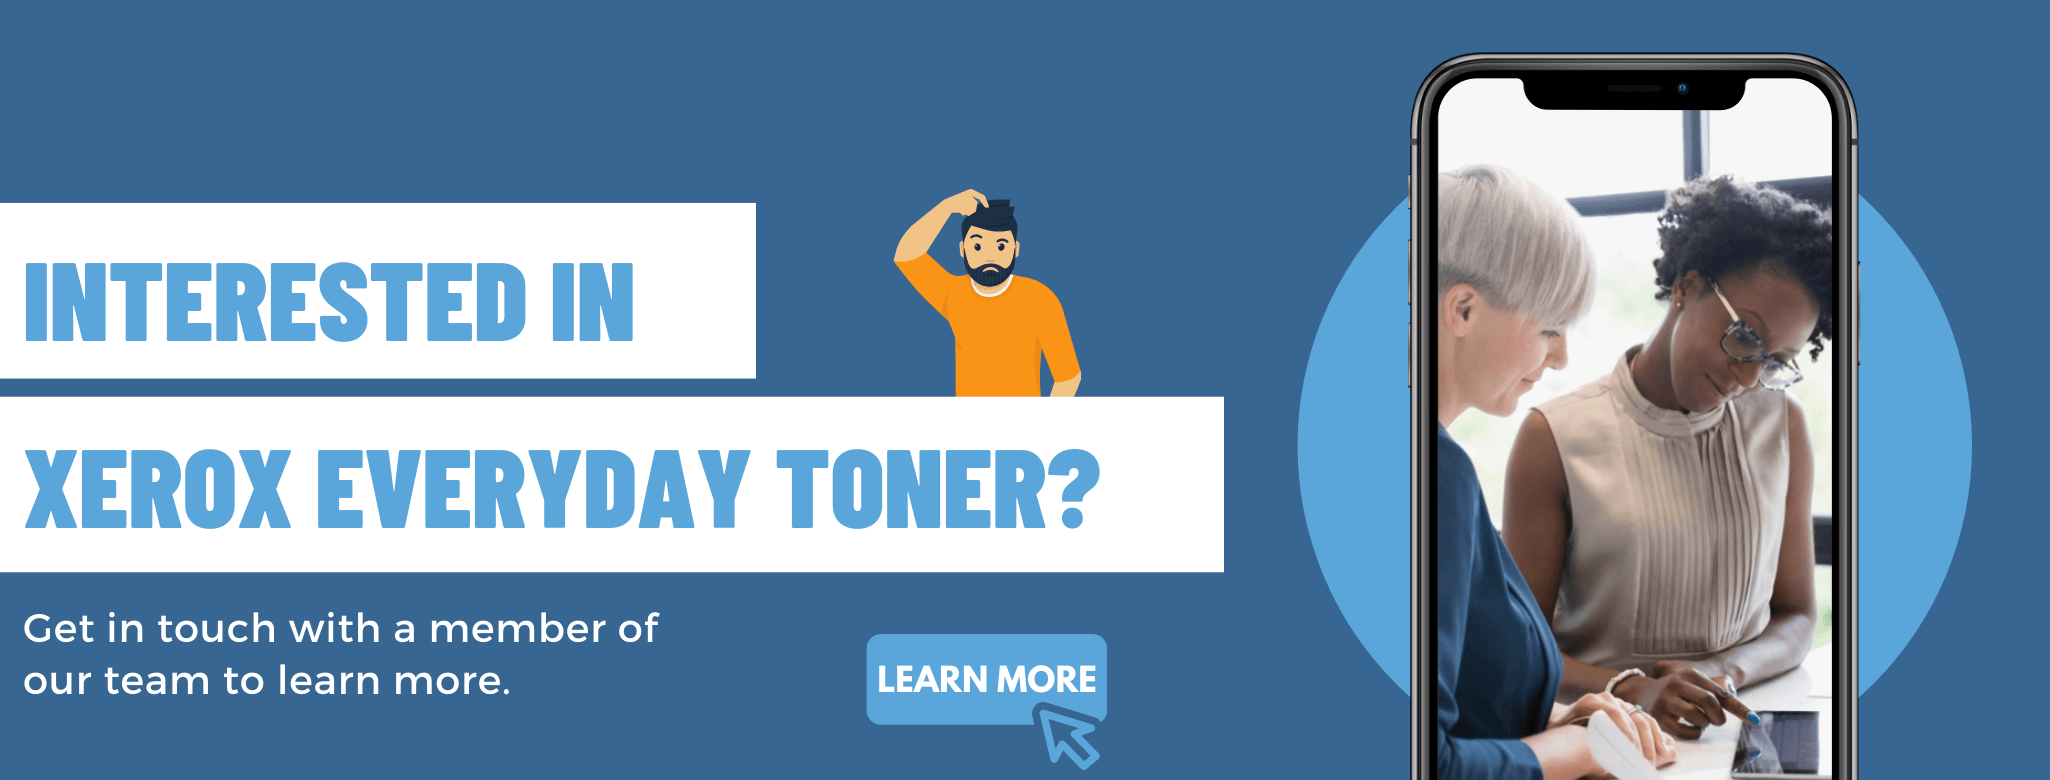 interested in everyday toner? man scratching head, learn more button